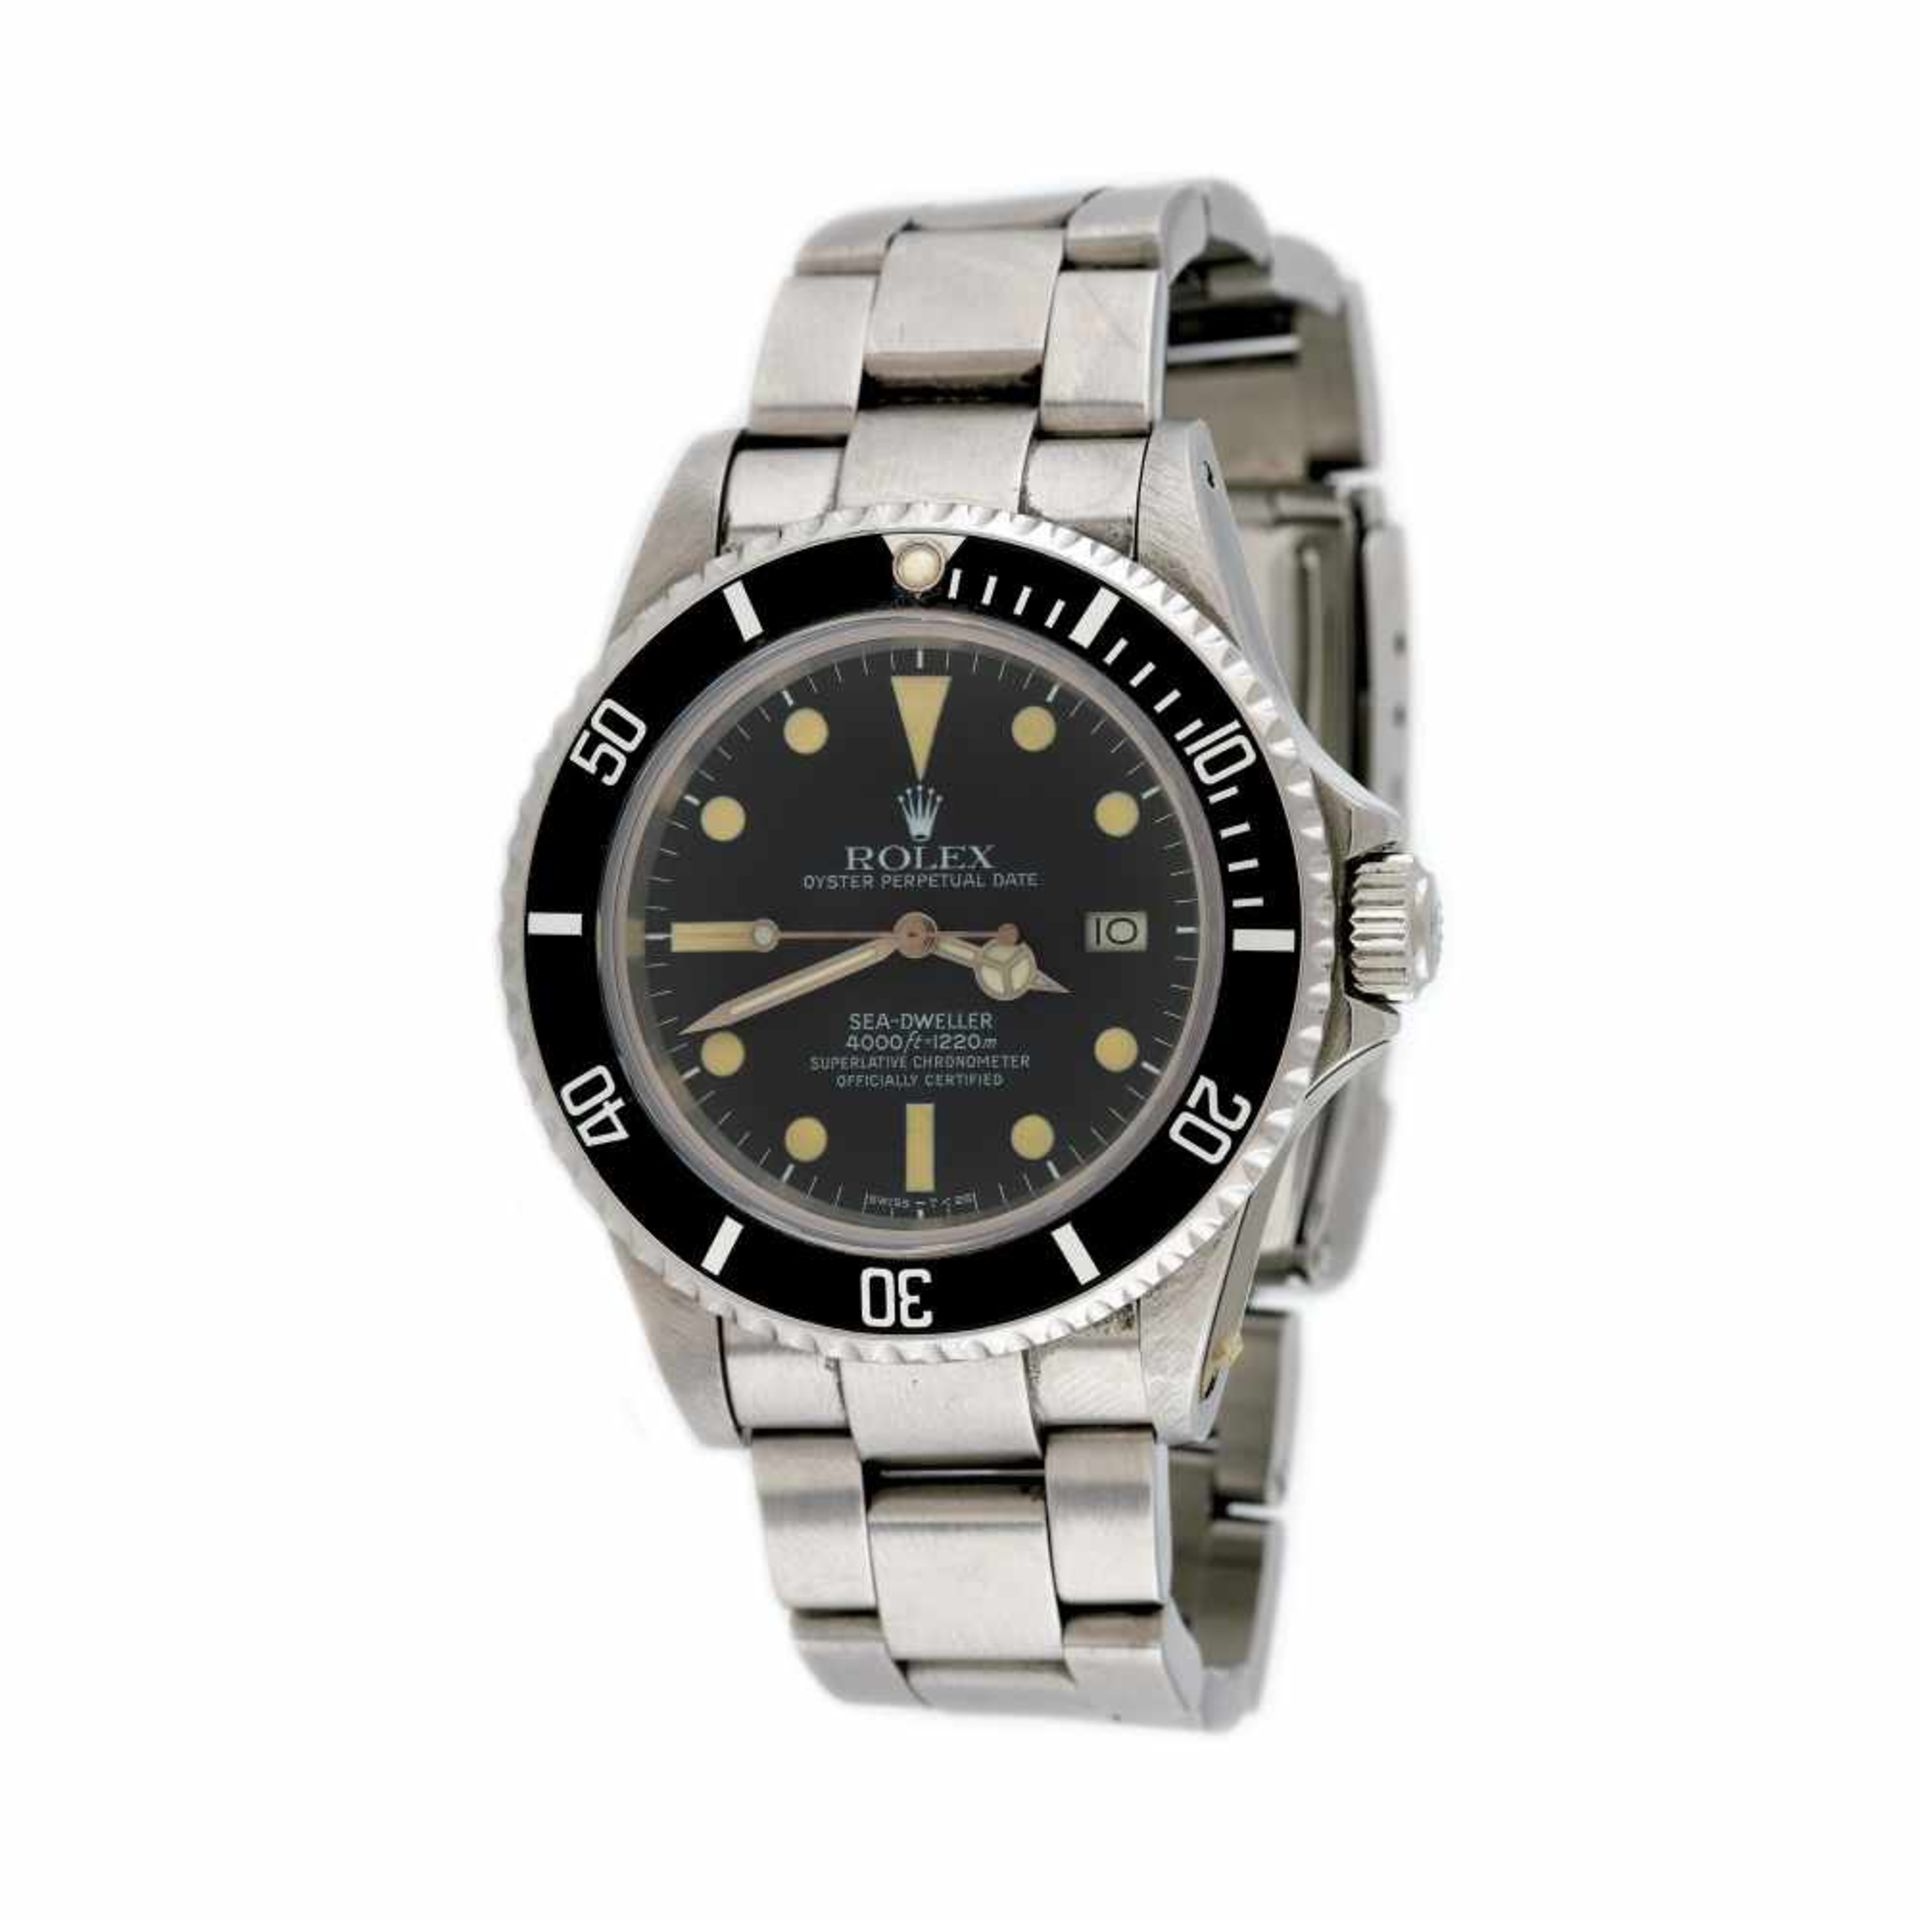 Rolex Sea-Dweller wristwatch, men